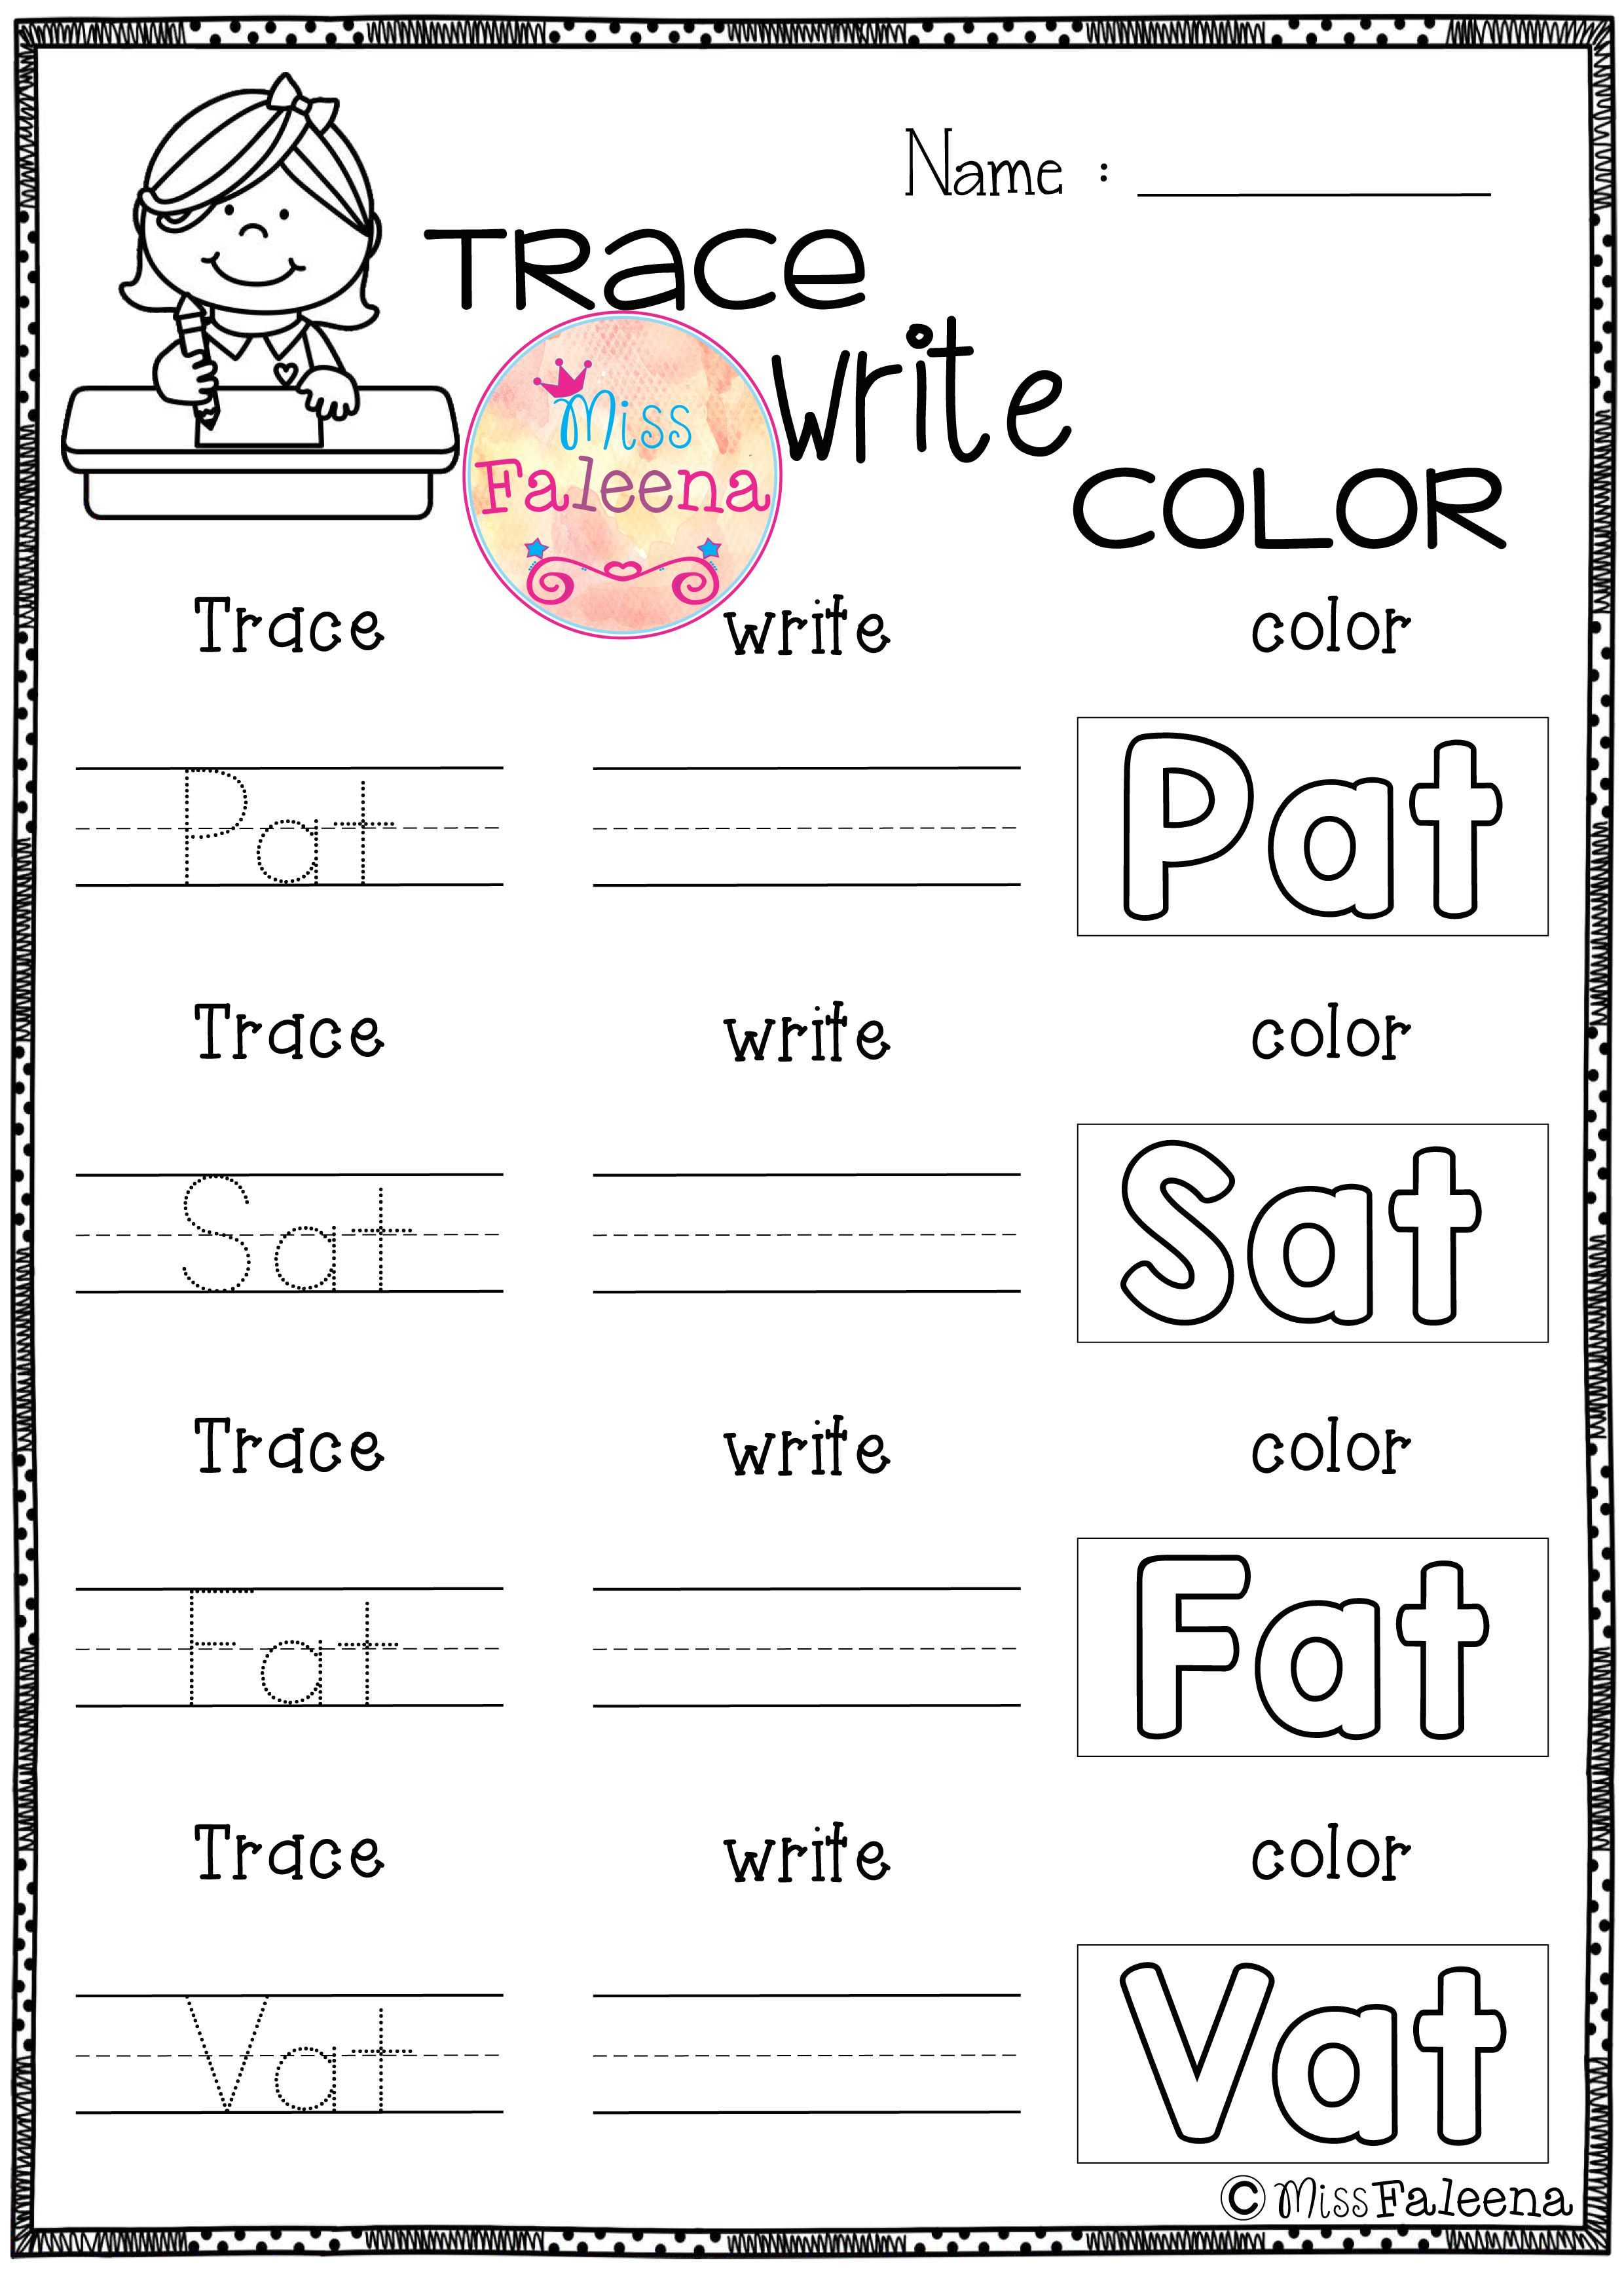 Cvc Words Short A Exercise This Product Is Designed To Help Teach - Cvc Words Worksheets Free Printable